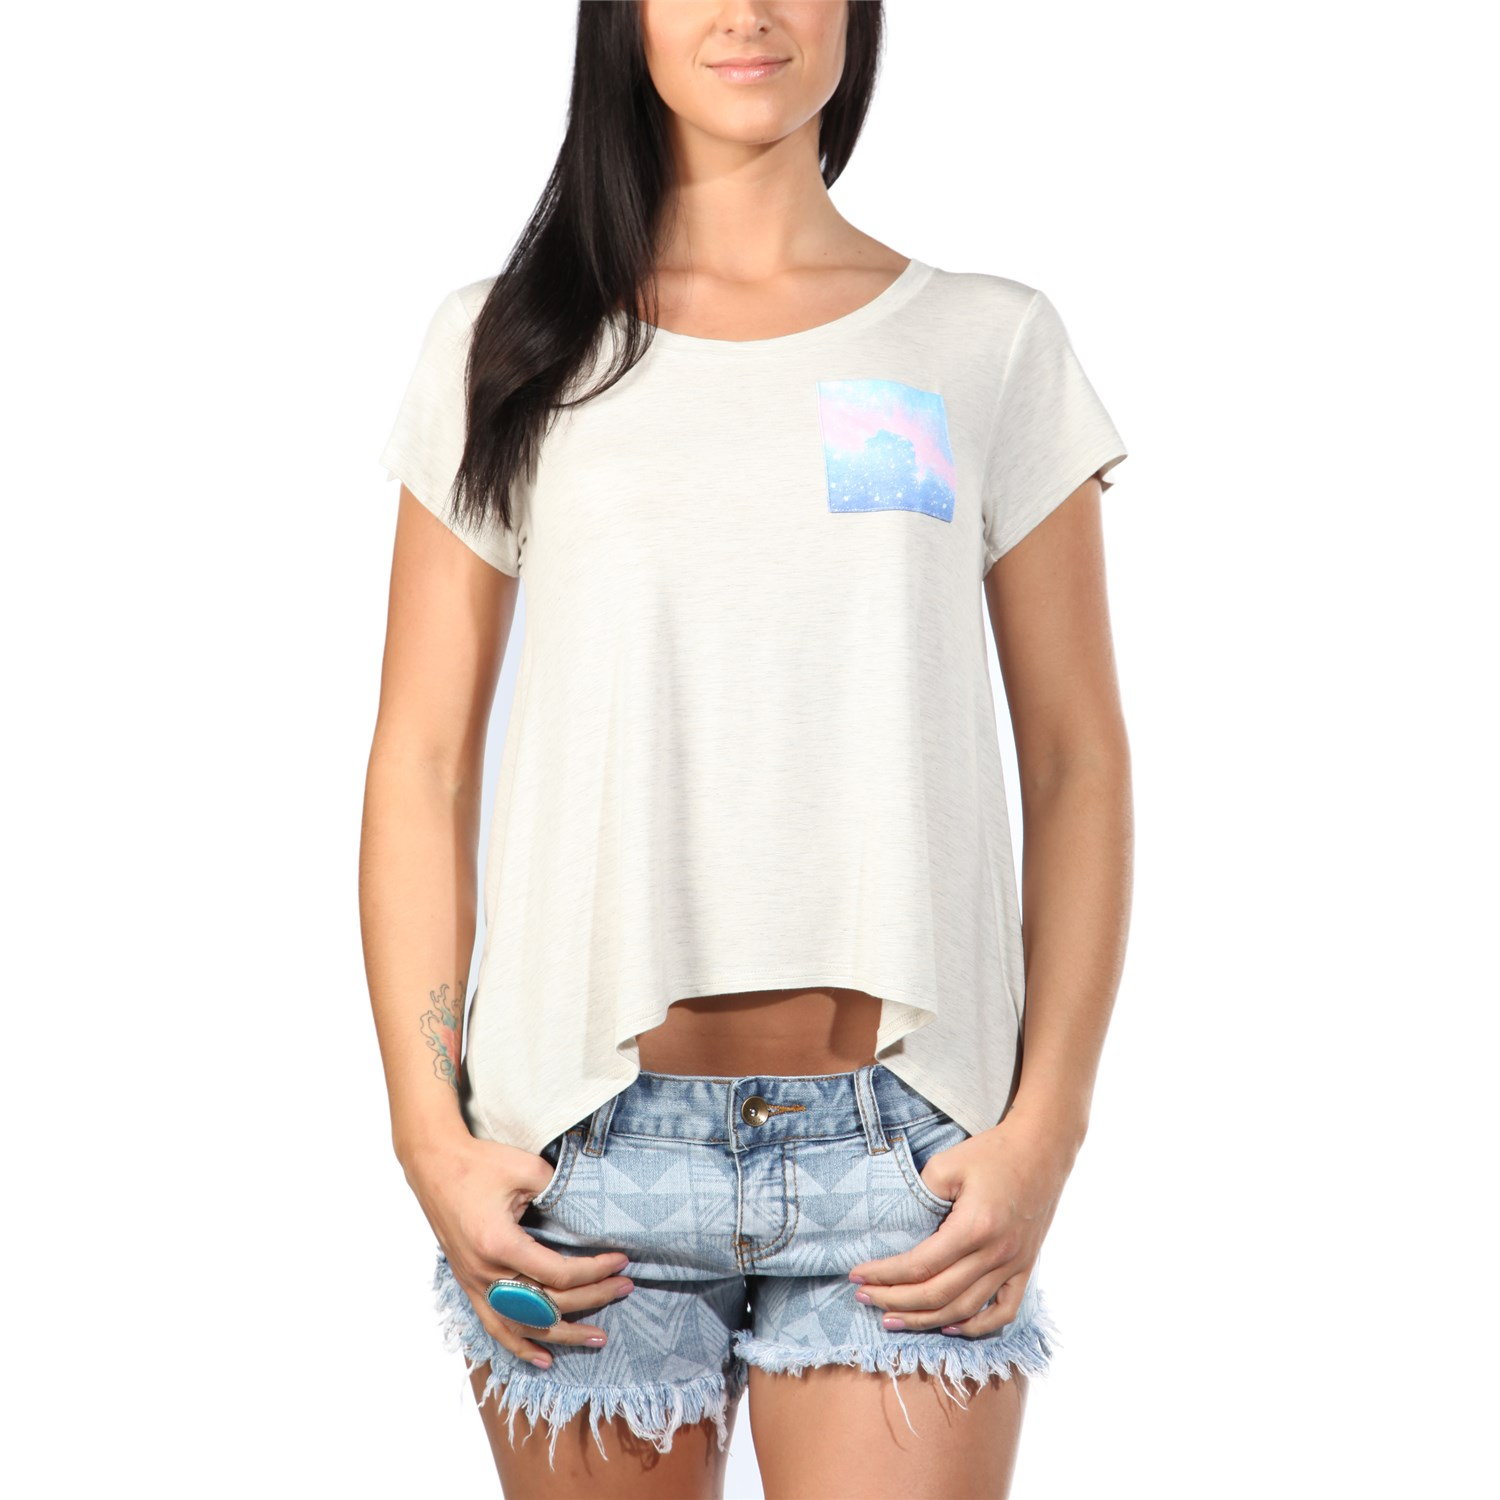 1000 images about tees on pinterest for Pocket tee shirts for womens